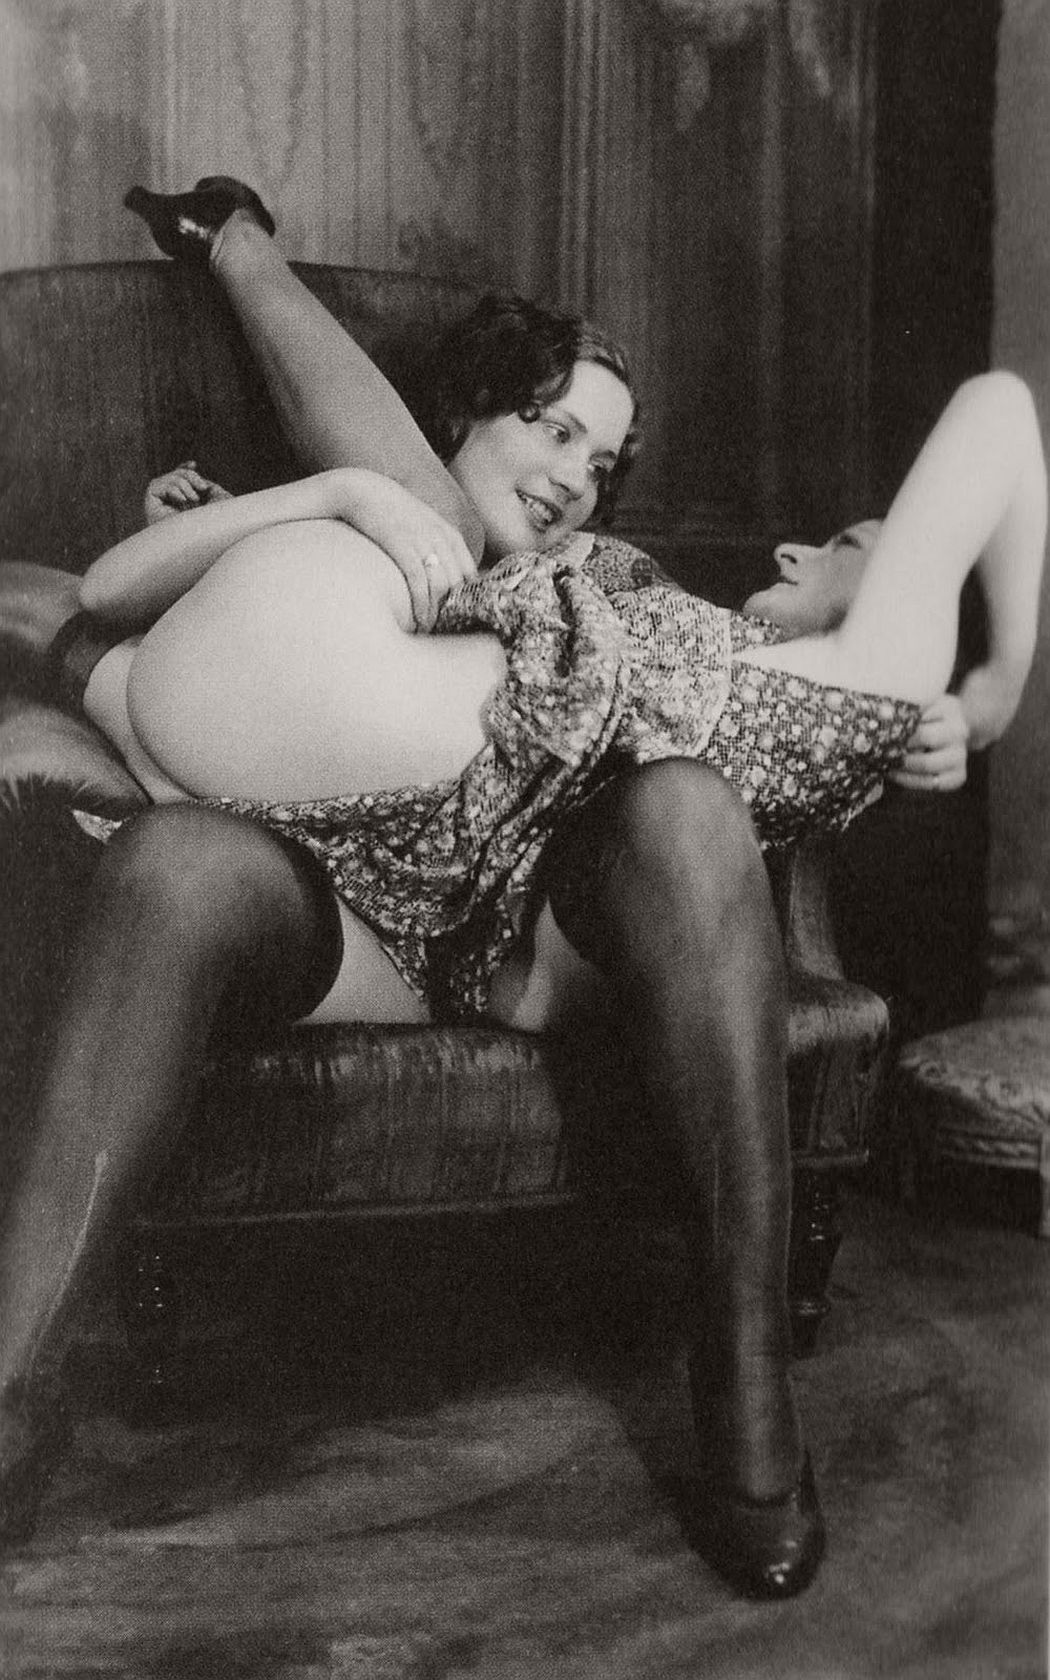 french vintage porn escort shemale paris